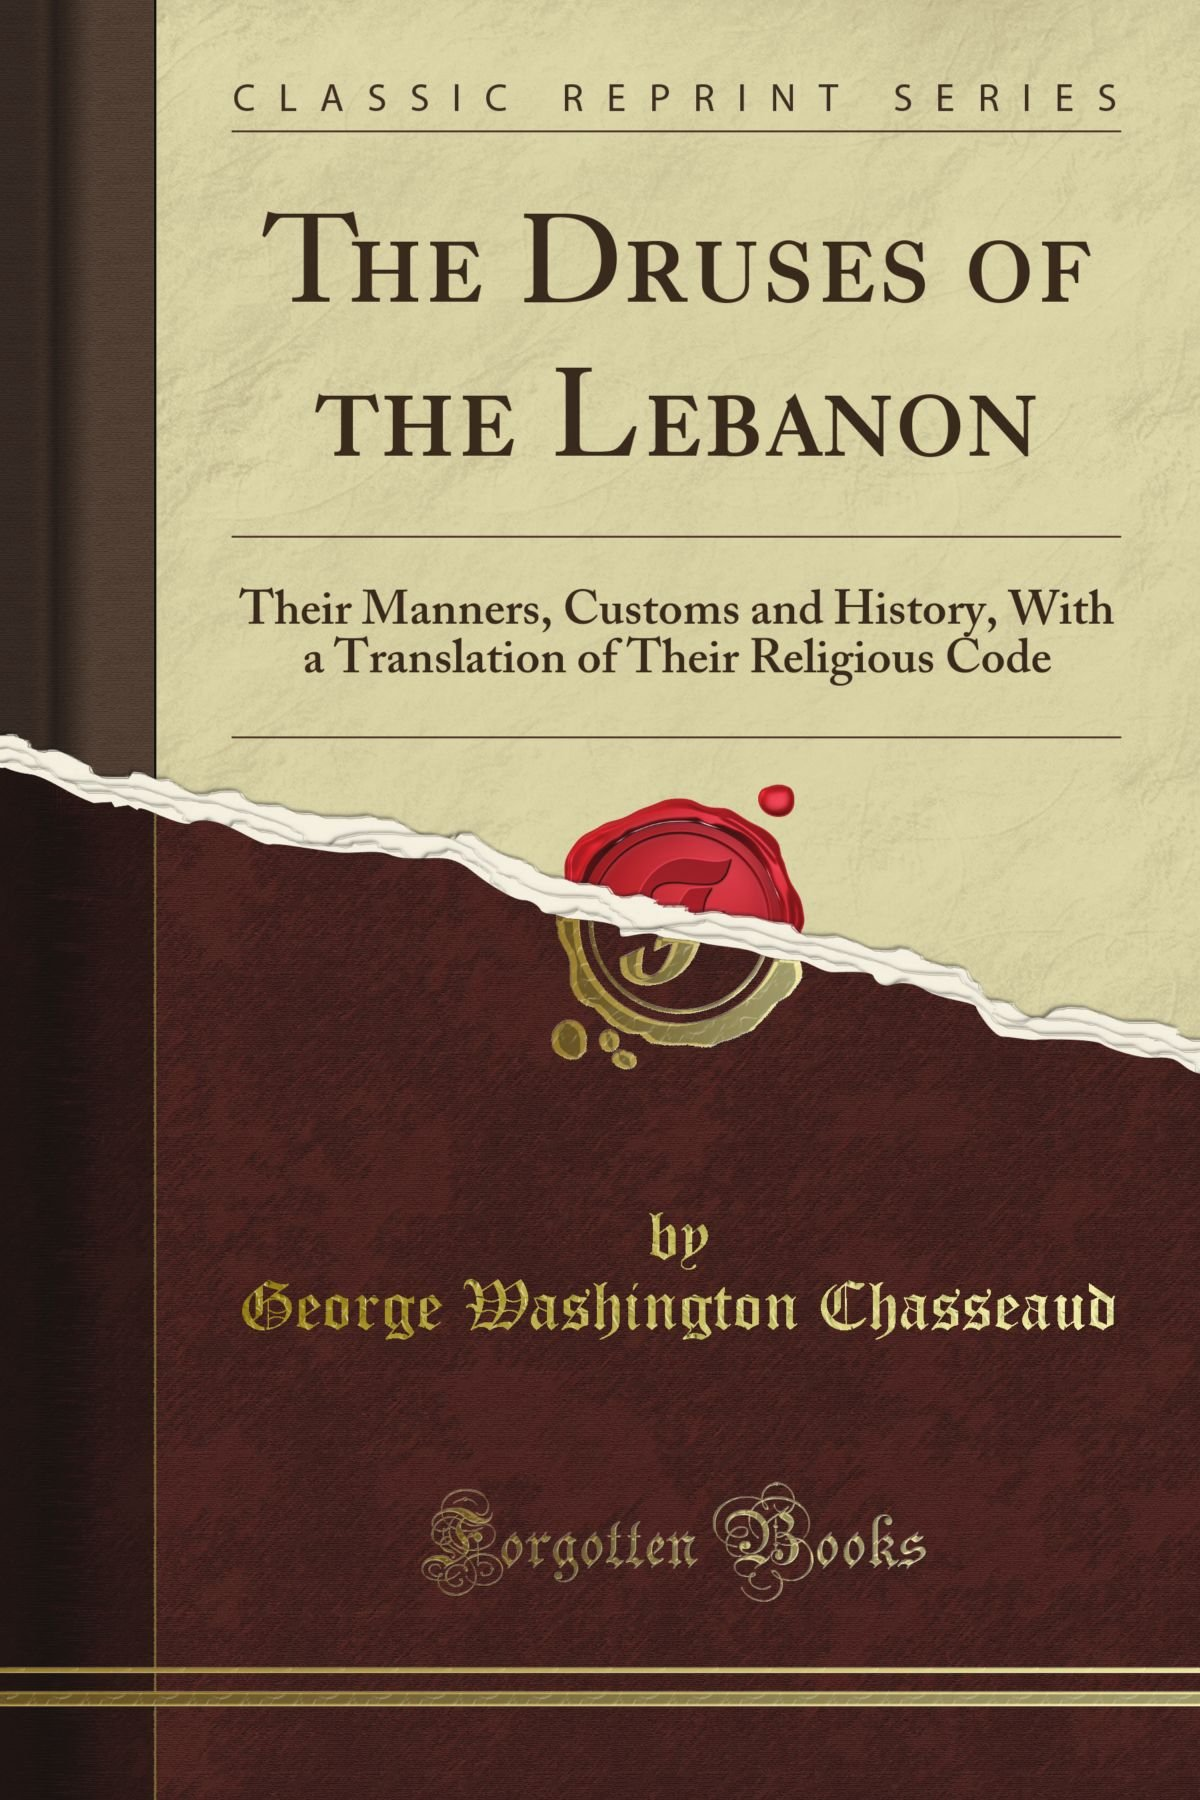 Download The Druses of the Lebanon: Their Manners, Customs and History, With a Translation of Their Religious Code (Classic Reprint) PDF